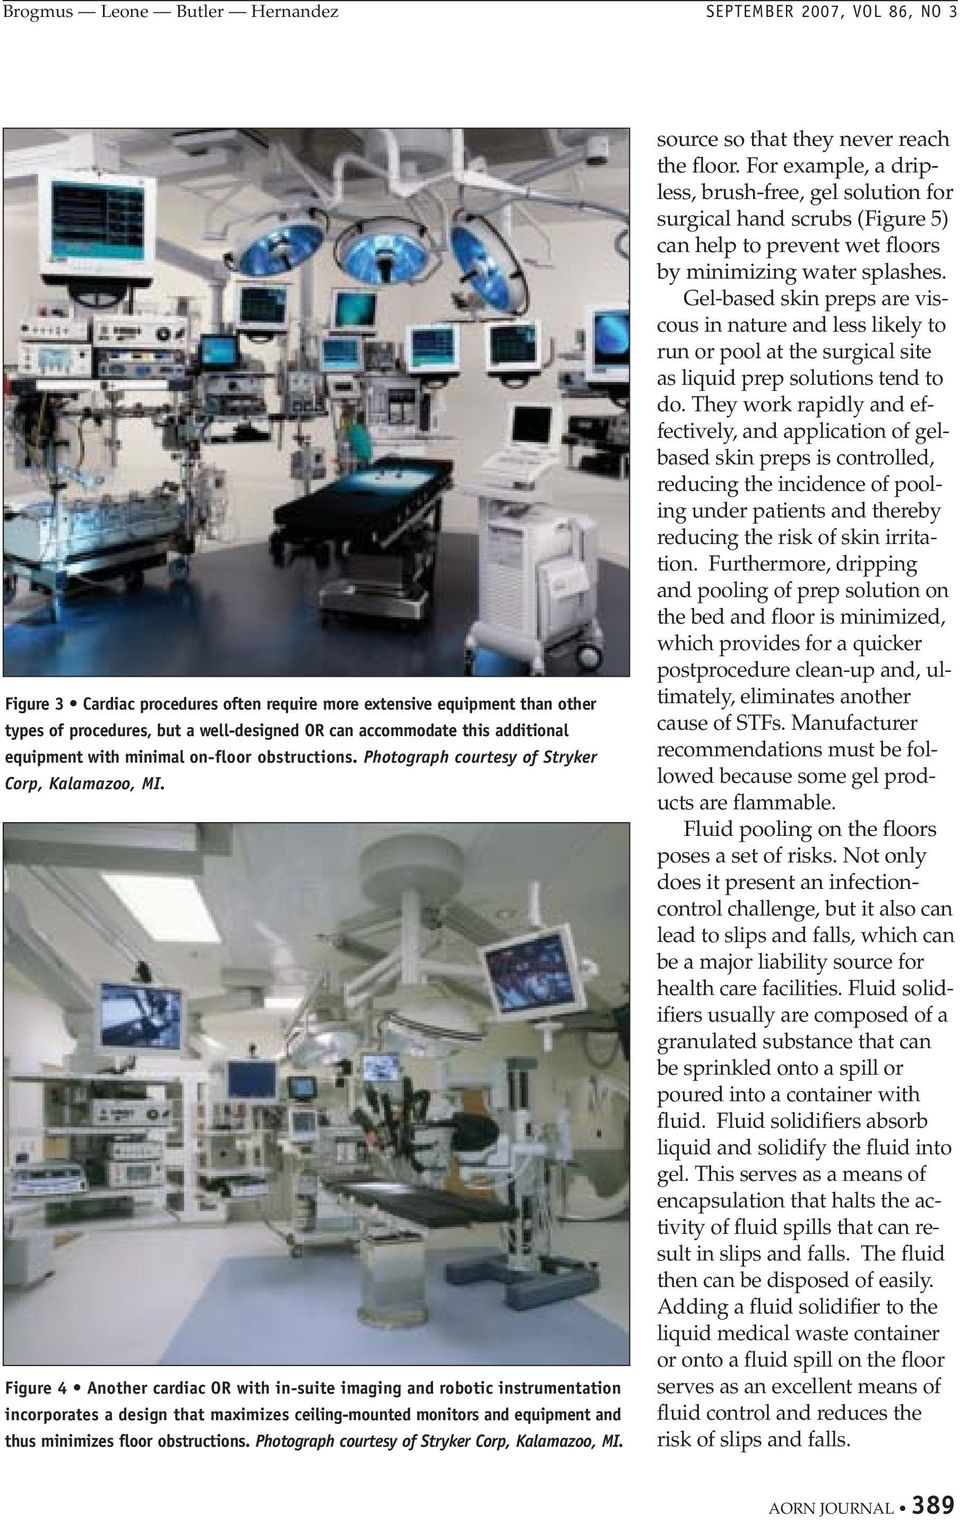 Figure Another cardiac OR with in-suite imaging and robotic instrumentation incorporates a design that maximizes ceiling-mounted monitors and equipment and thus minimizes floor obstructions.